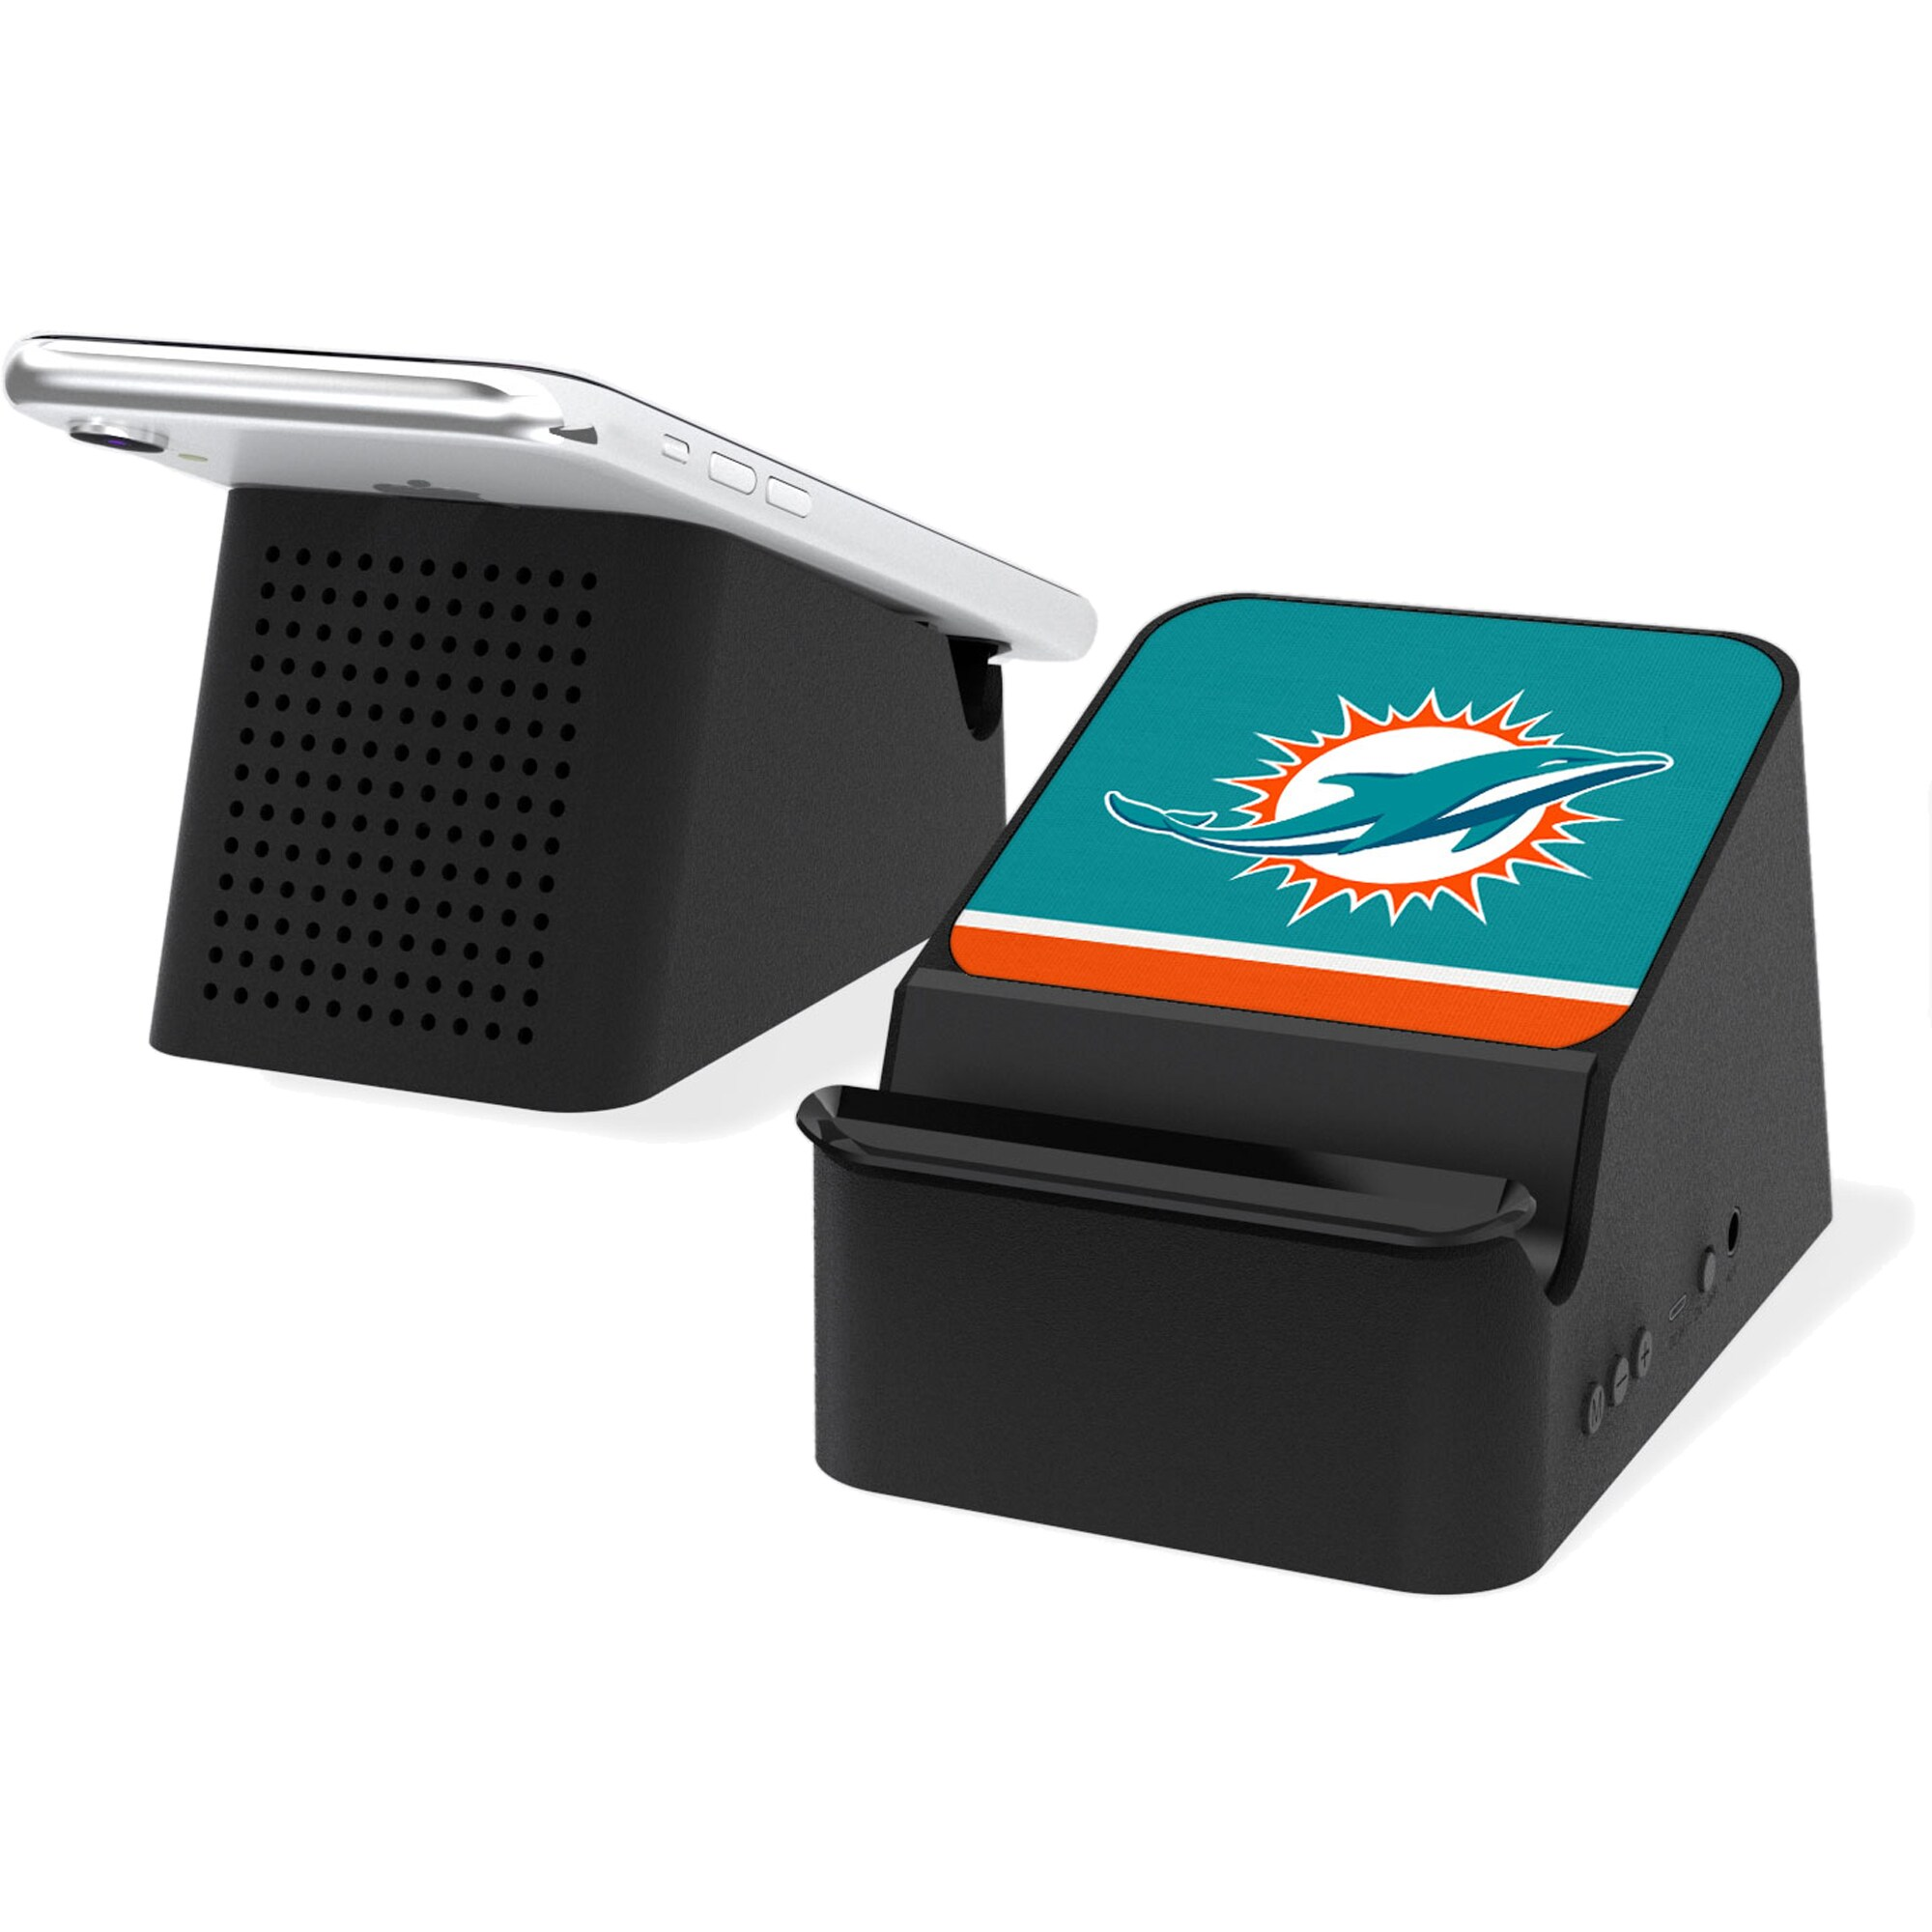 Miami Dolphins Wireless Charging Station and Bluetooth Speaker